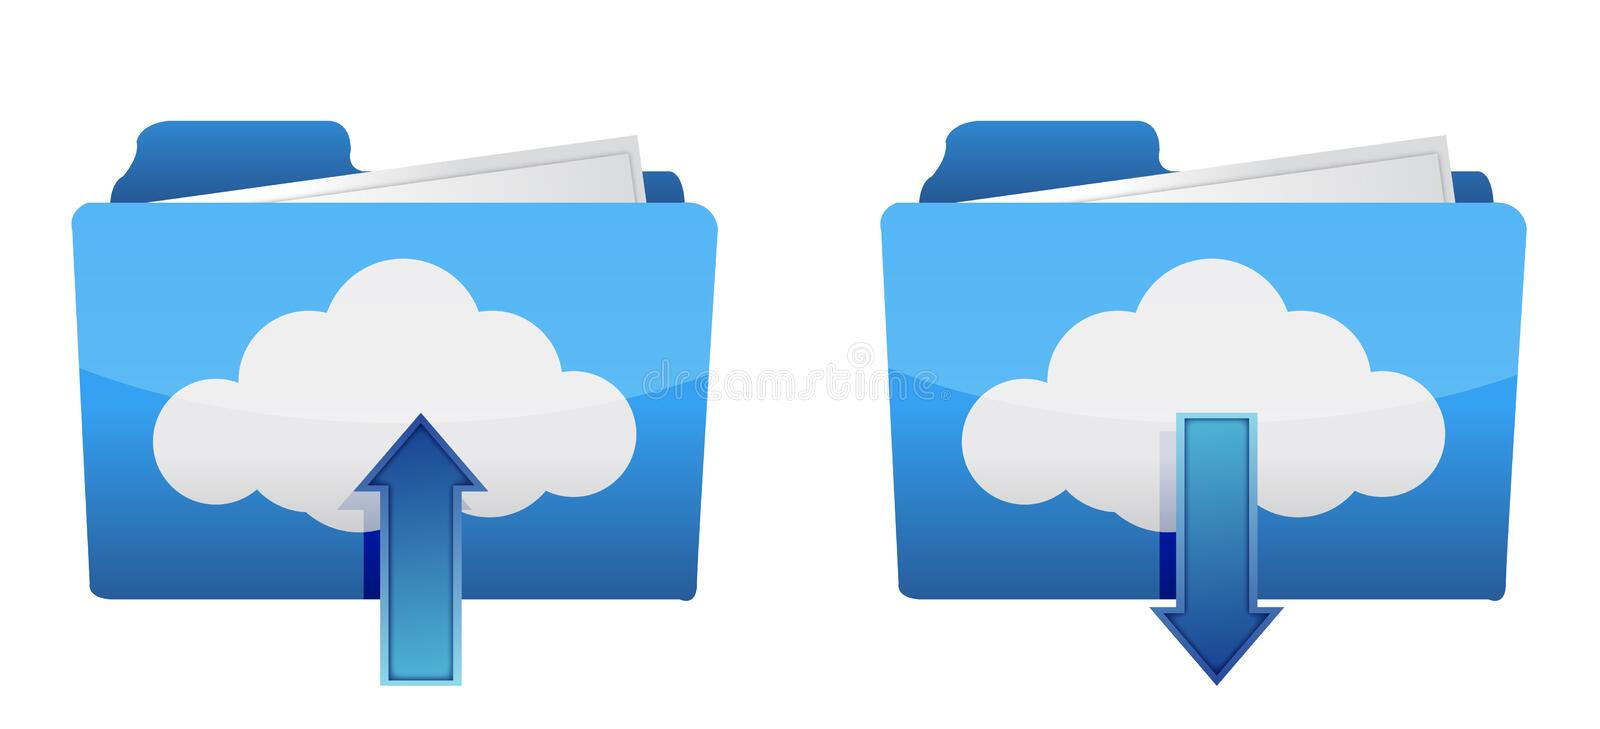 Cloud computing upload and download icons royalty free illustration